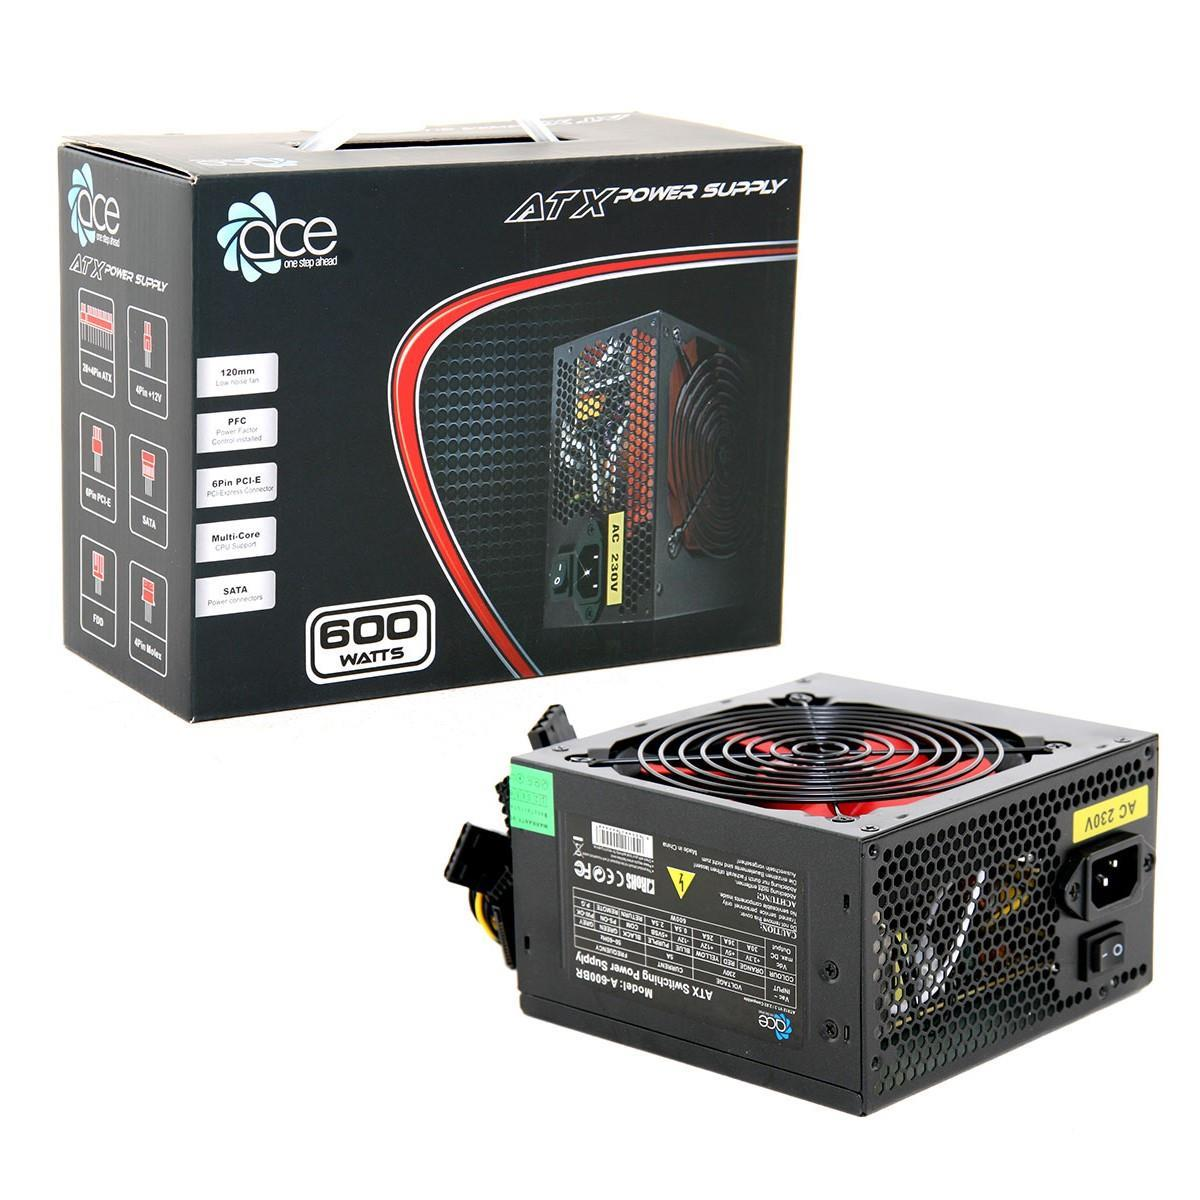 600W Ace Value Black PSU 24 Pin with 12cm fan SATA Power Supply